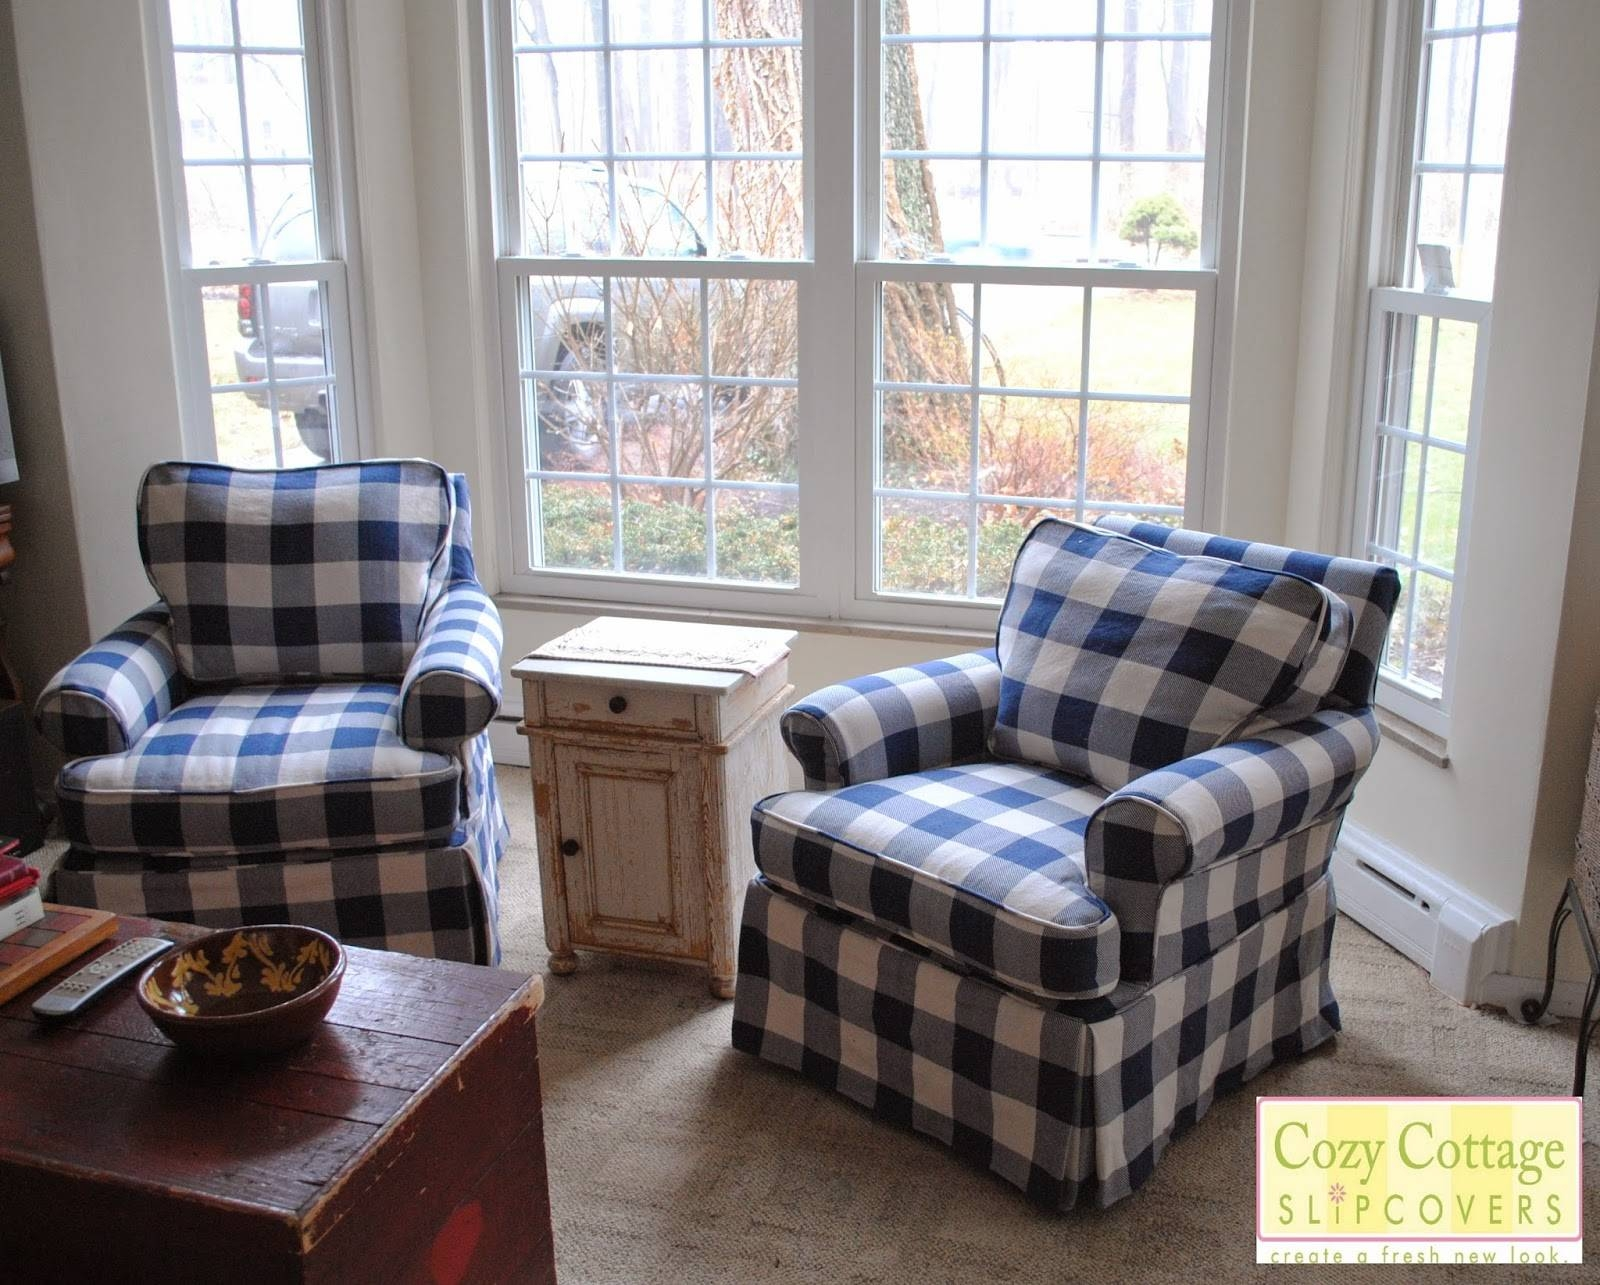 Cozy Cottage Slipcovers: Blue And White Buffalo Check Slipcovers with Buffalo Check Sofas (Image 12 of 15)